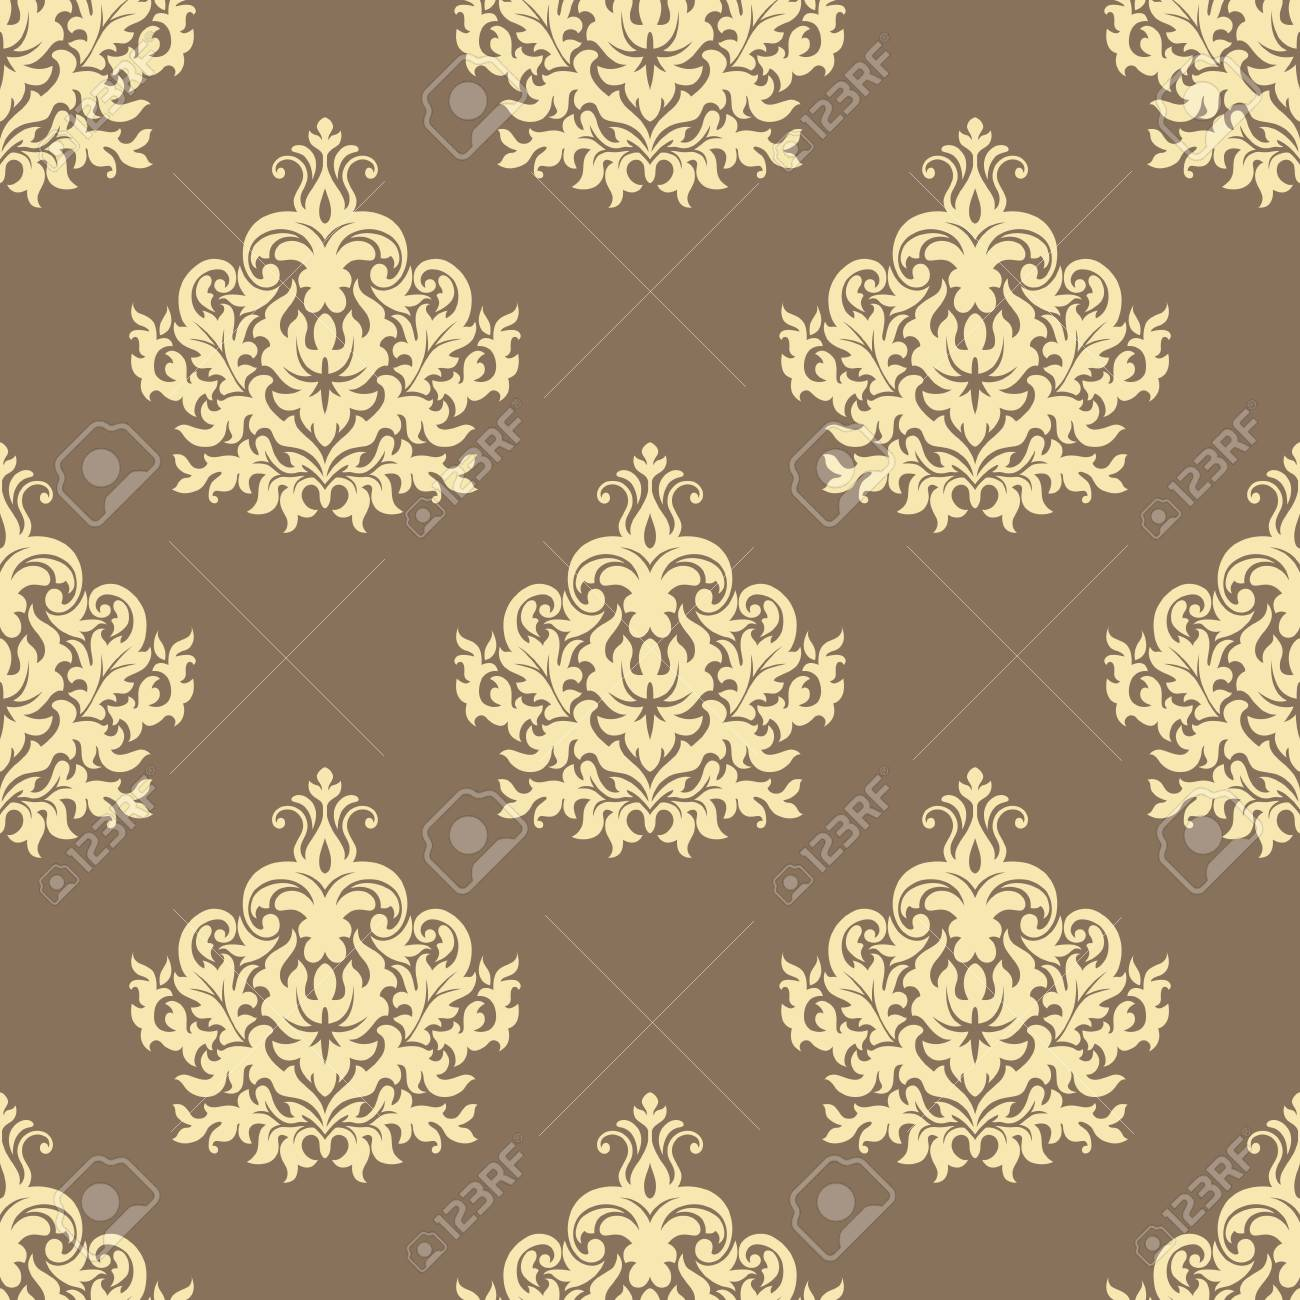 Floral Retro Yellow Floral Seamless Pattern On Light Brown Colored